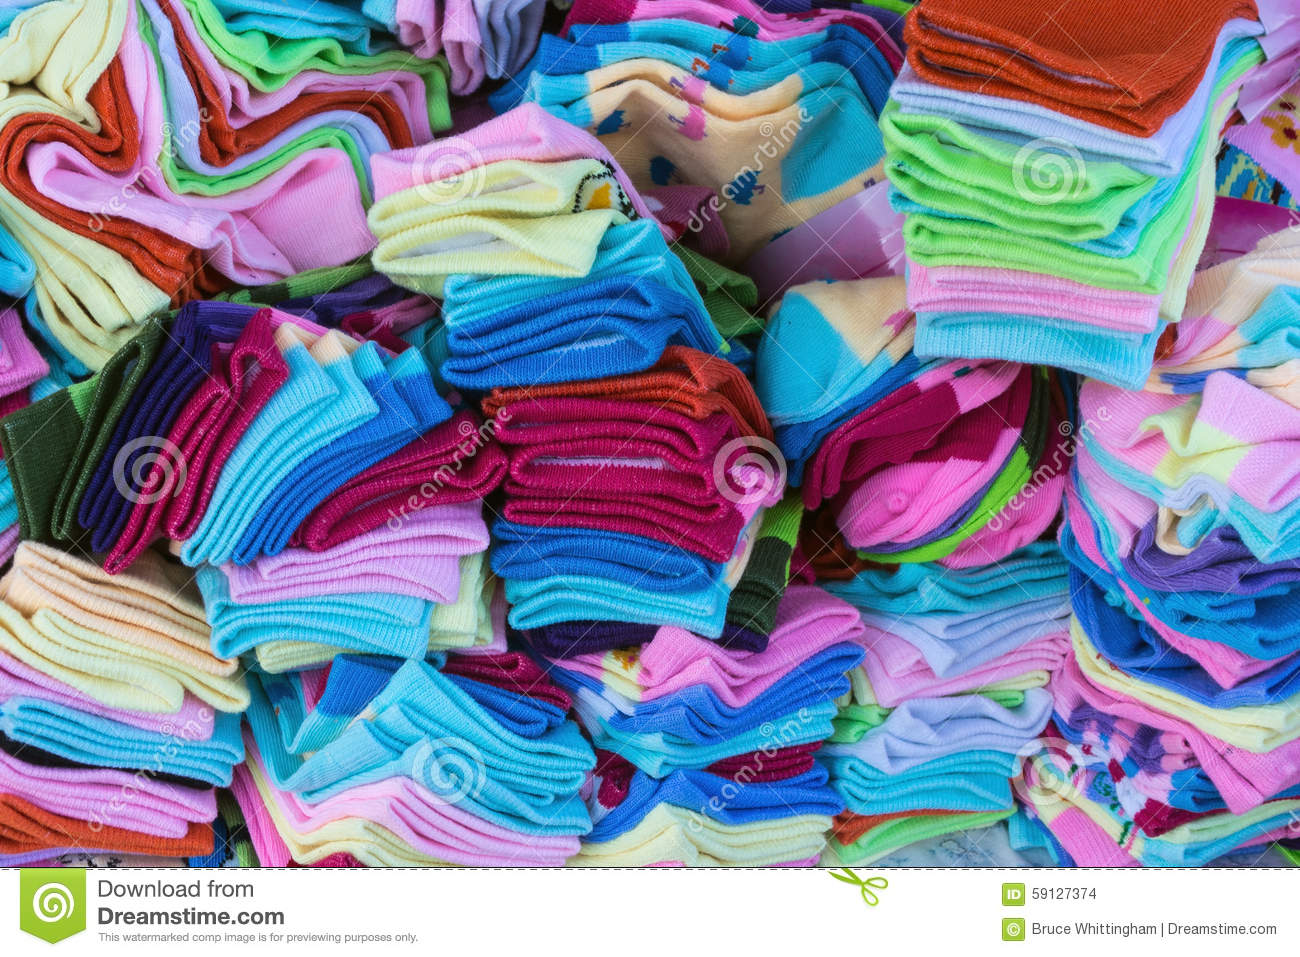 Download Colourful Socks stock photo. Image of fabric, many, colourful - 59127374